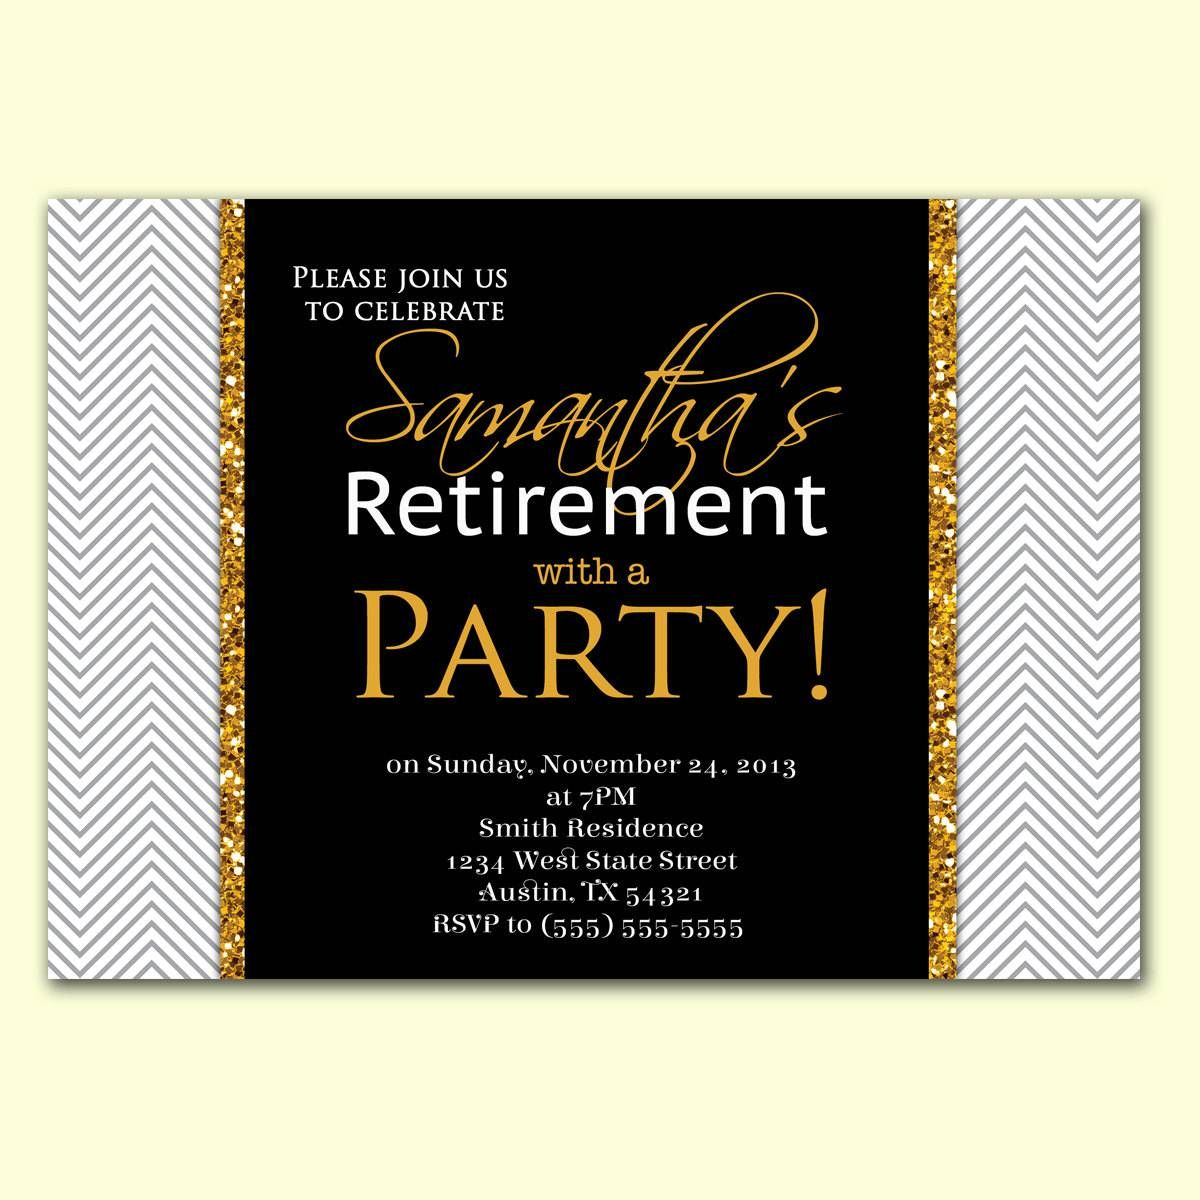 Retirement Party Invitation Wording In Hindi